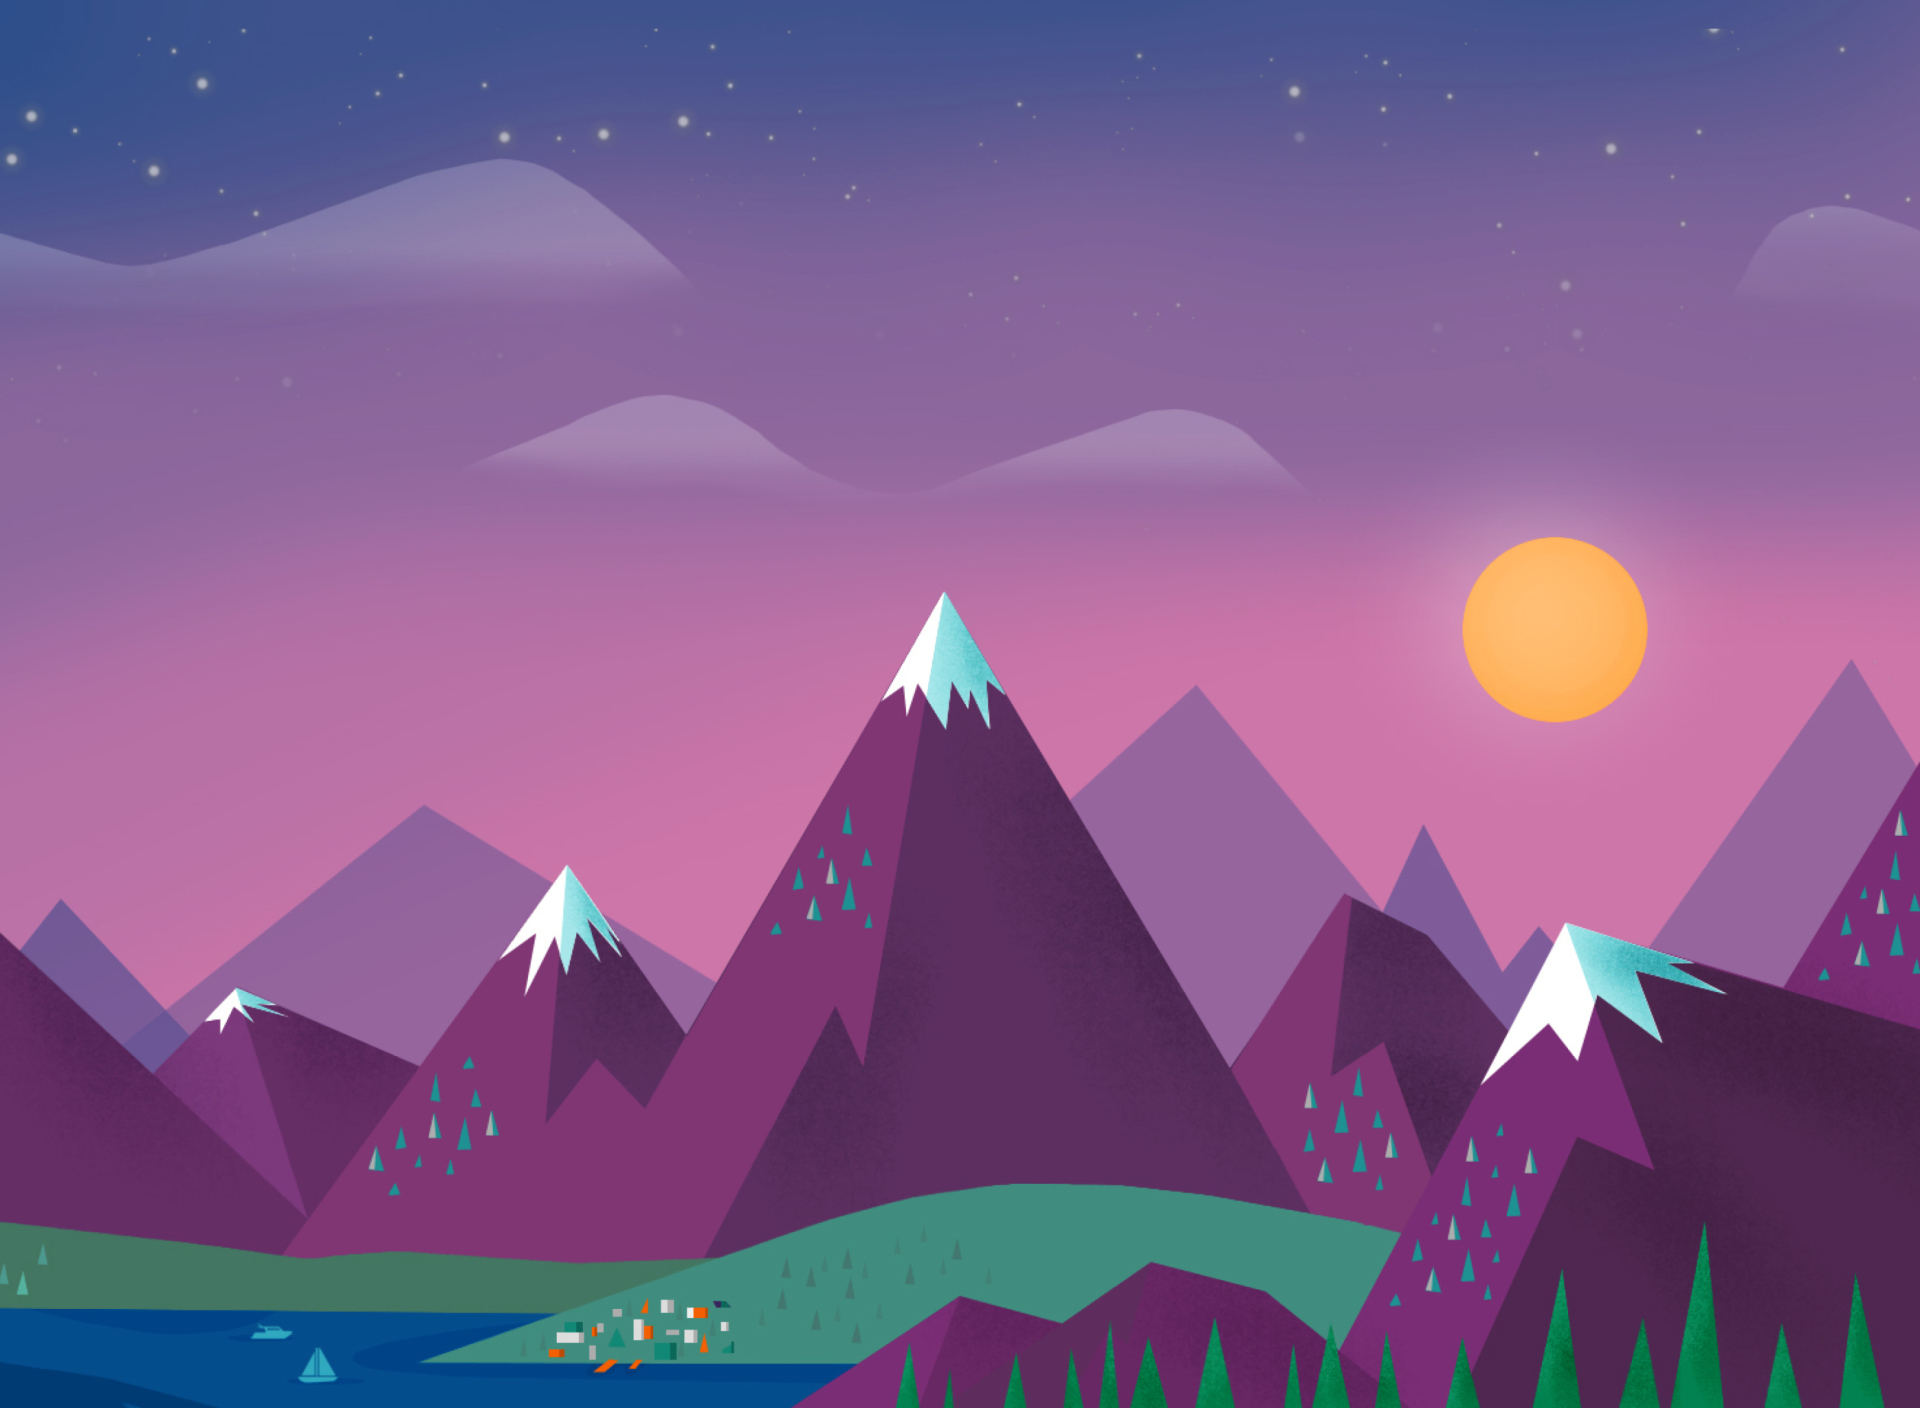 Purple Mountains Illustration Wallpaper For Samsung Galaxy S5